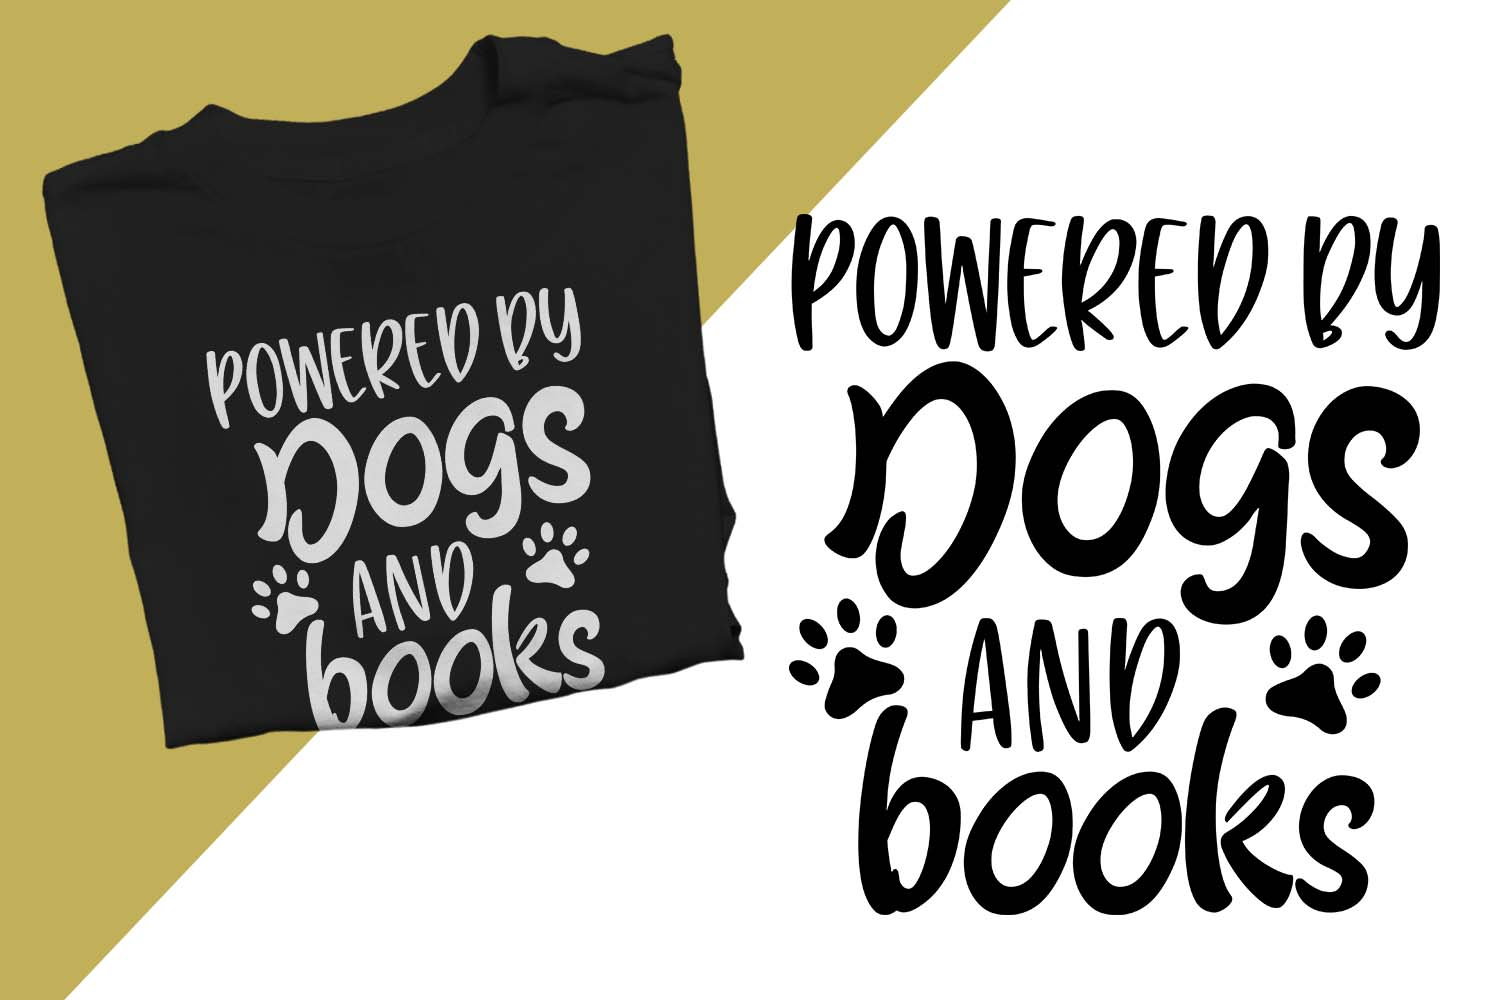 Powered by dogs and books Printable example image 1